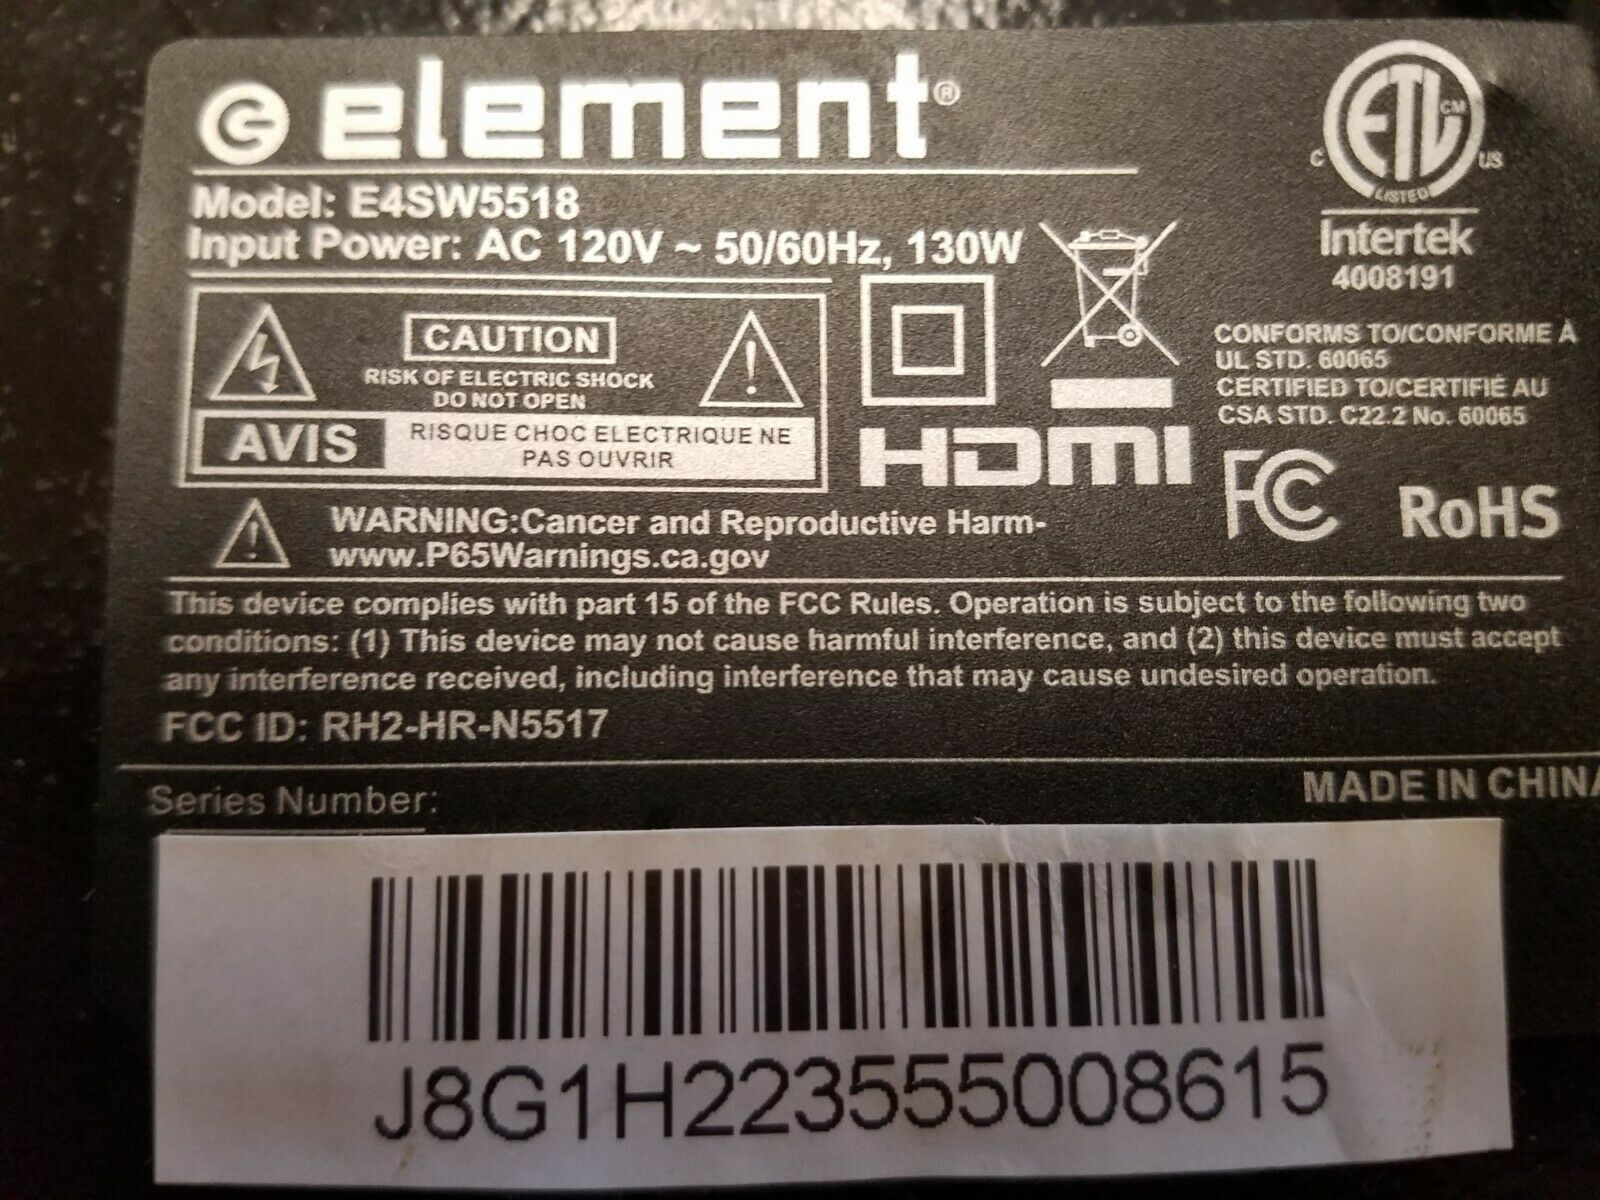 element 55in tv parts model number e4sw5518. Available Now for 150.00